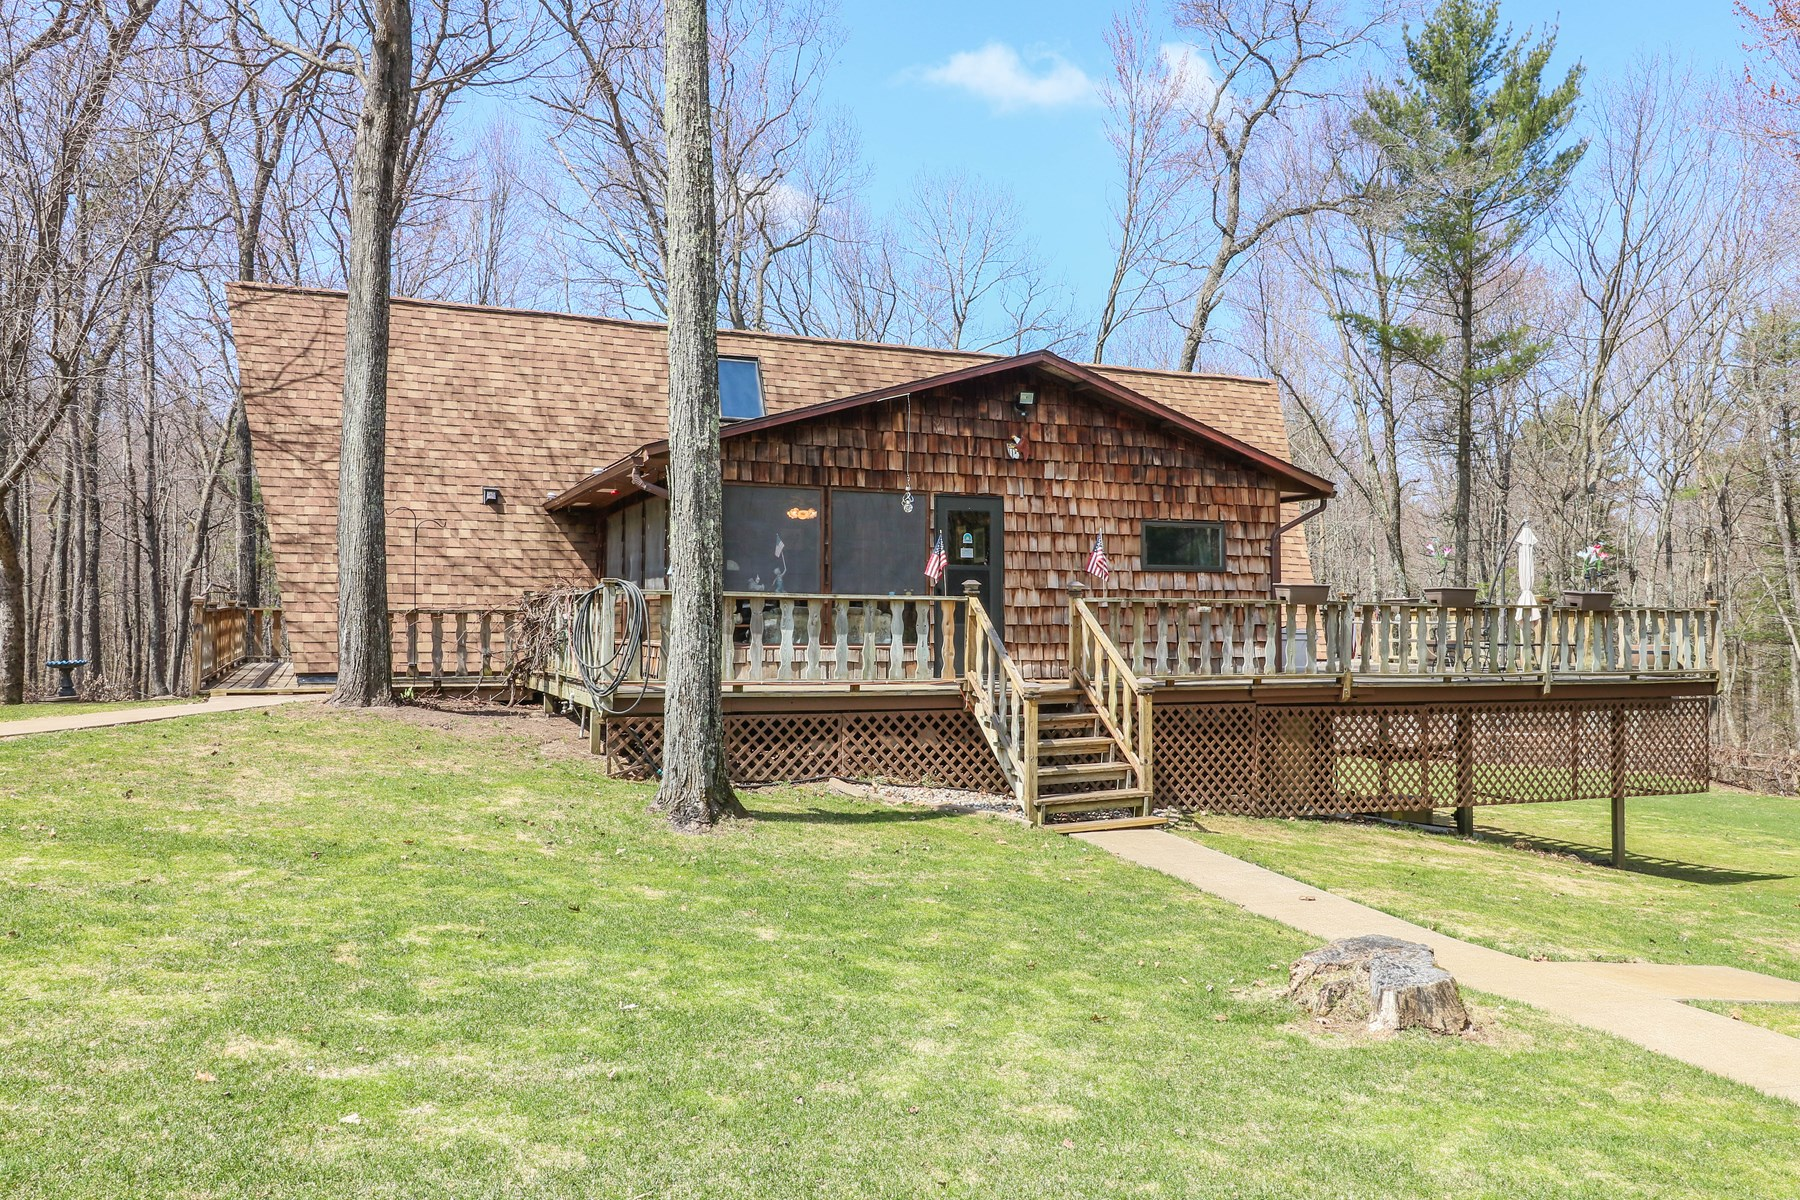 Country Home for sale + Acreage in Iola, Waupaca County, WI